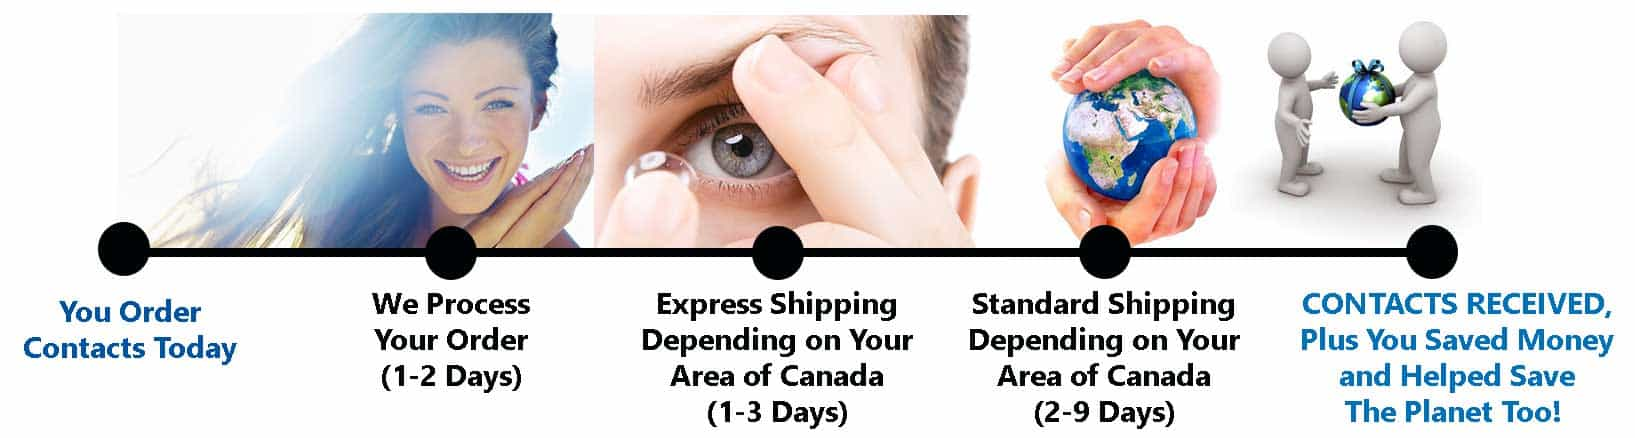 Card Shipping Graphic